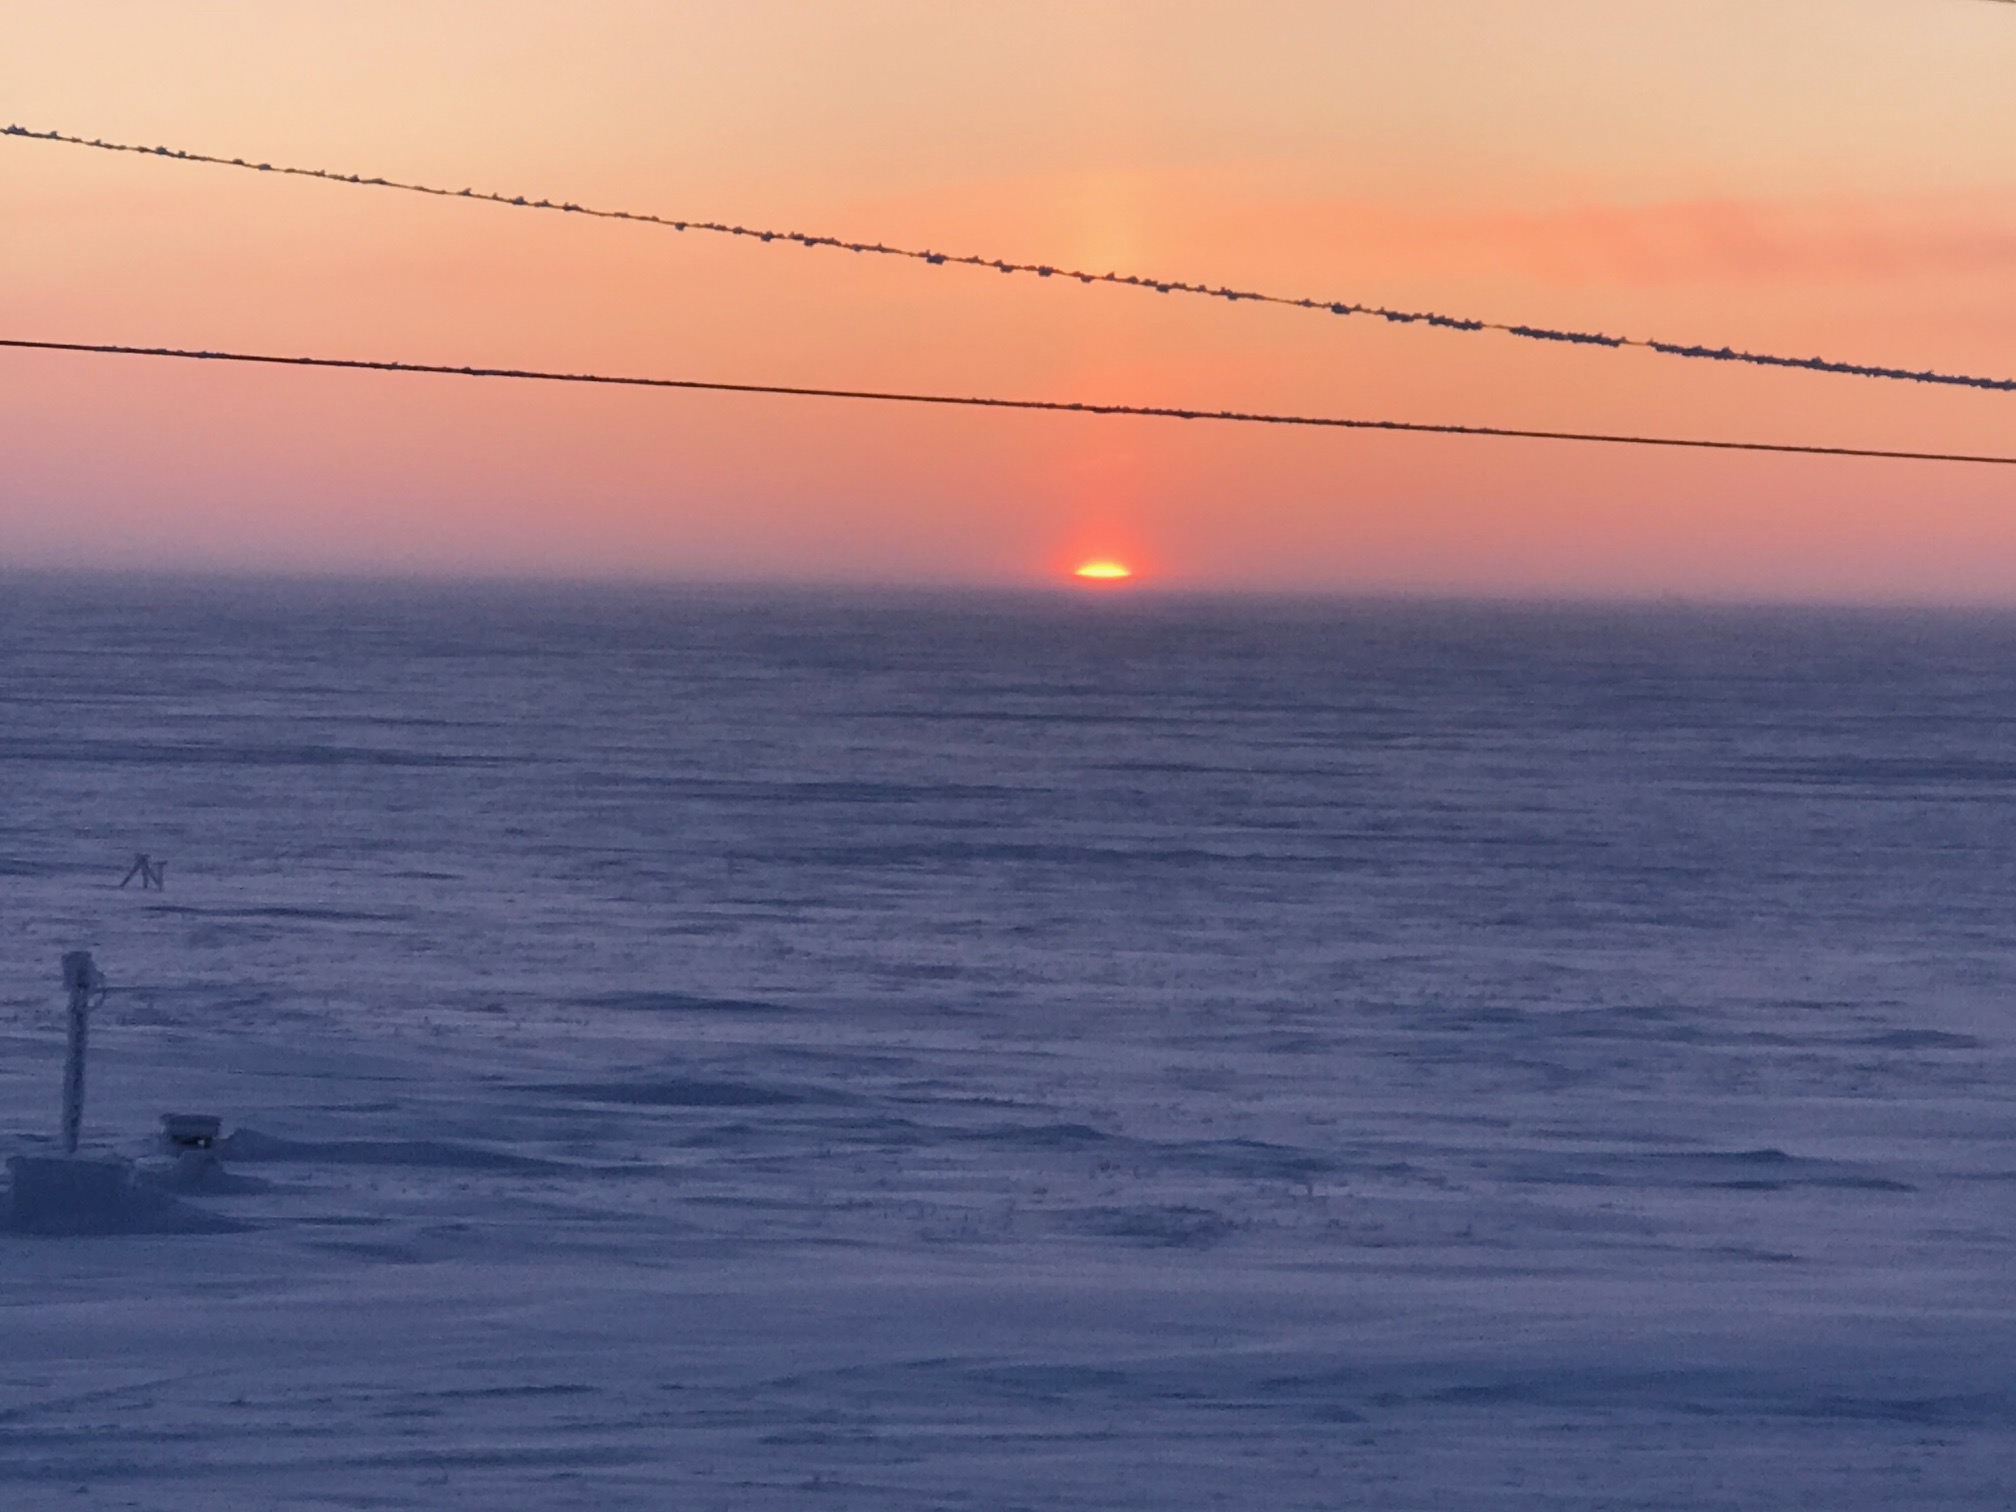 Utqiaġvik Sees First Sunrise in 66 Days